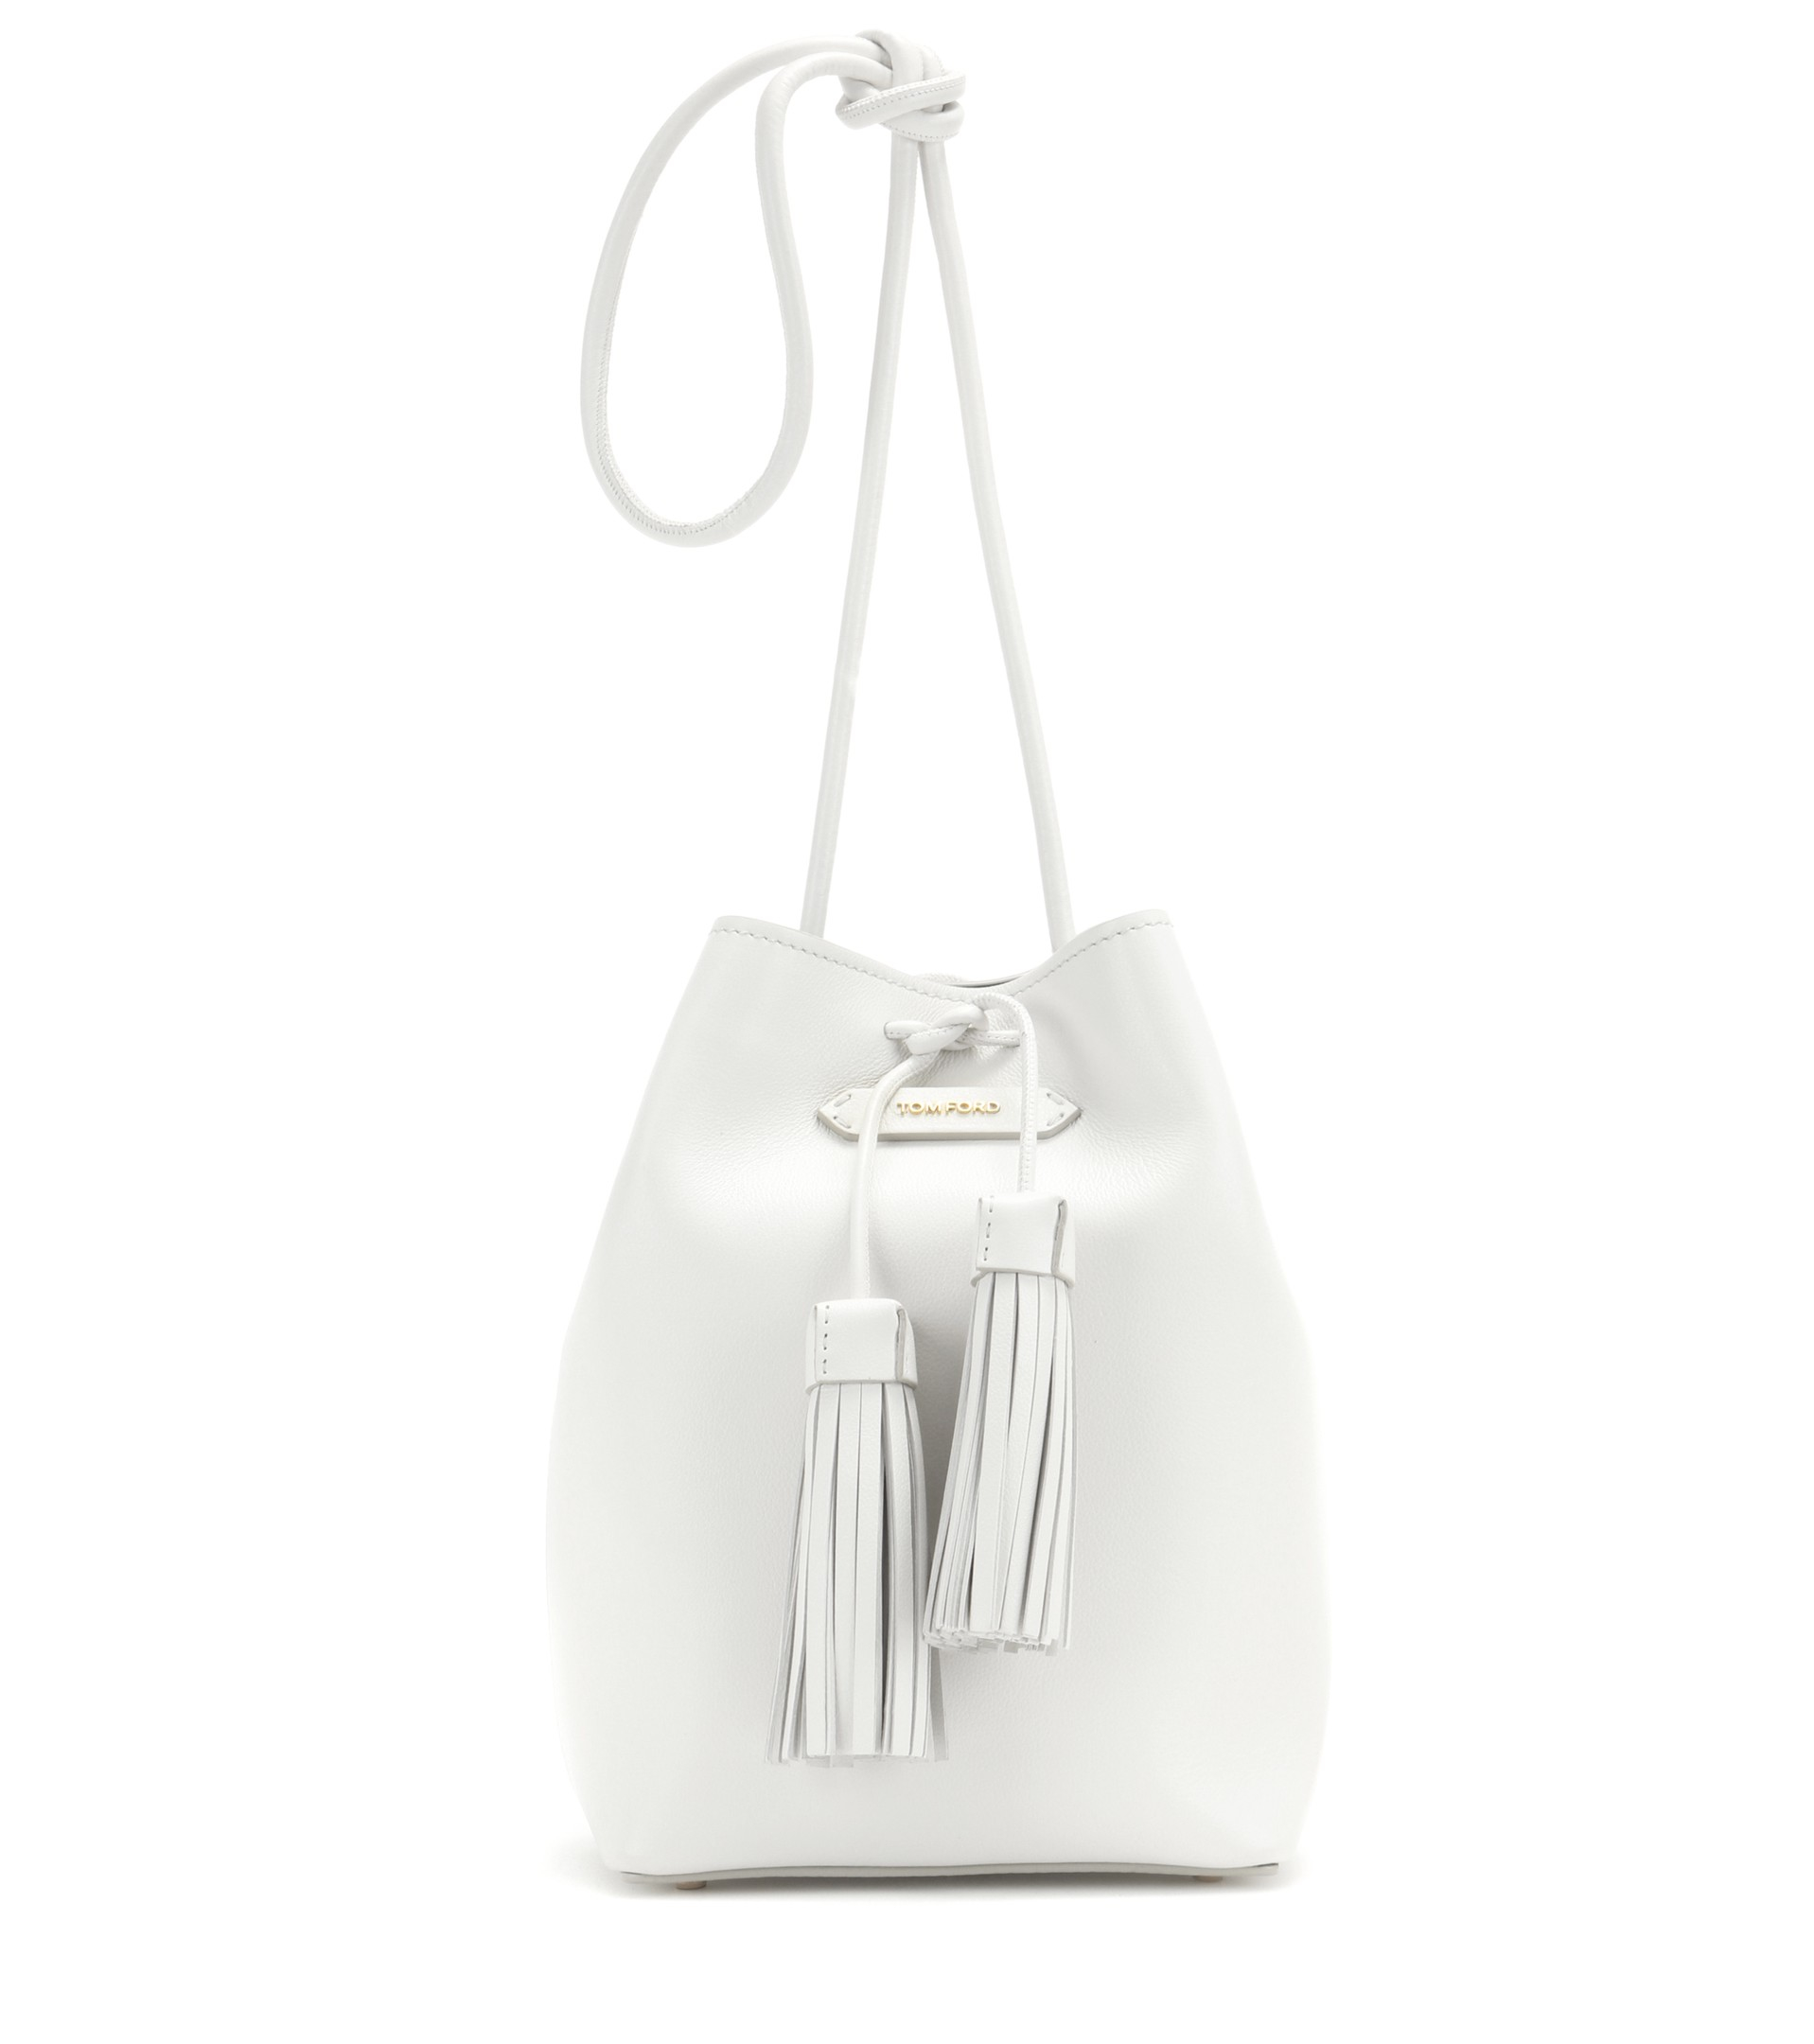 76663cf2fd67 Lyst - Tom Ford Bucket Small Leather Bucket Bag in White